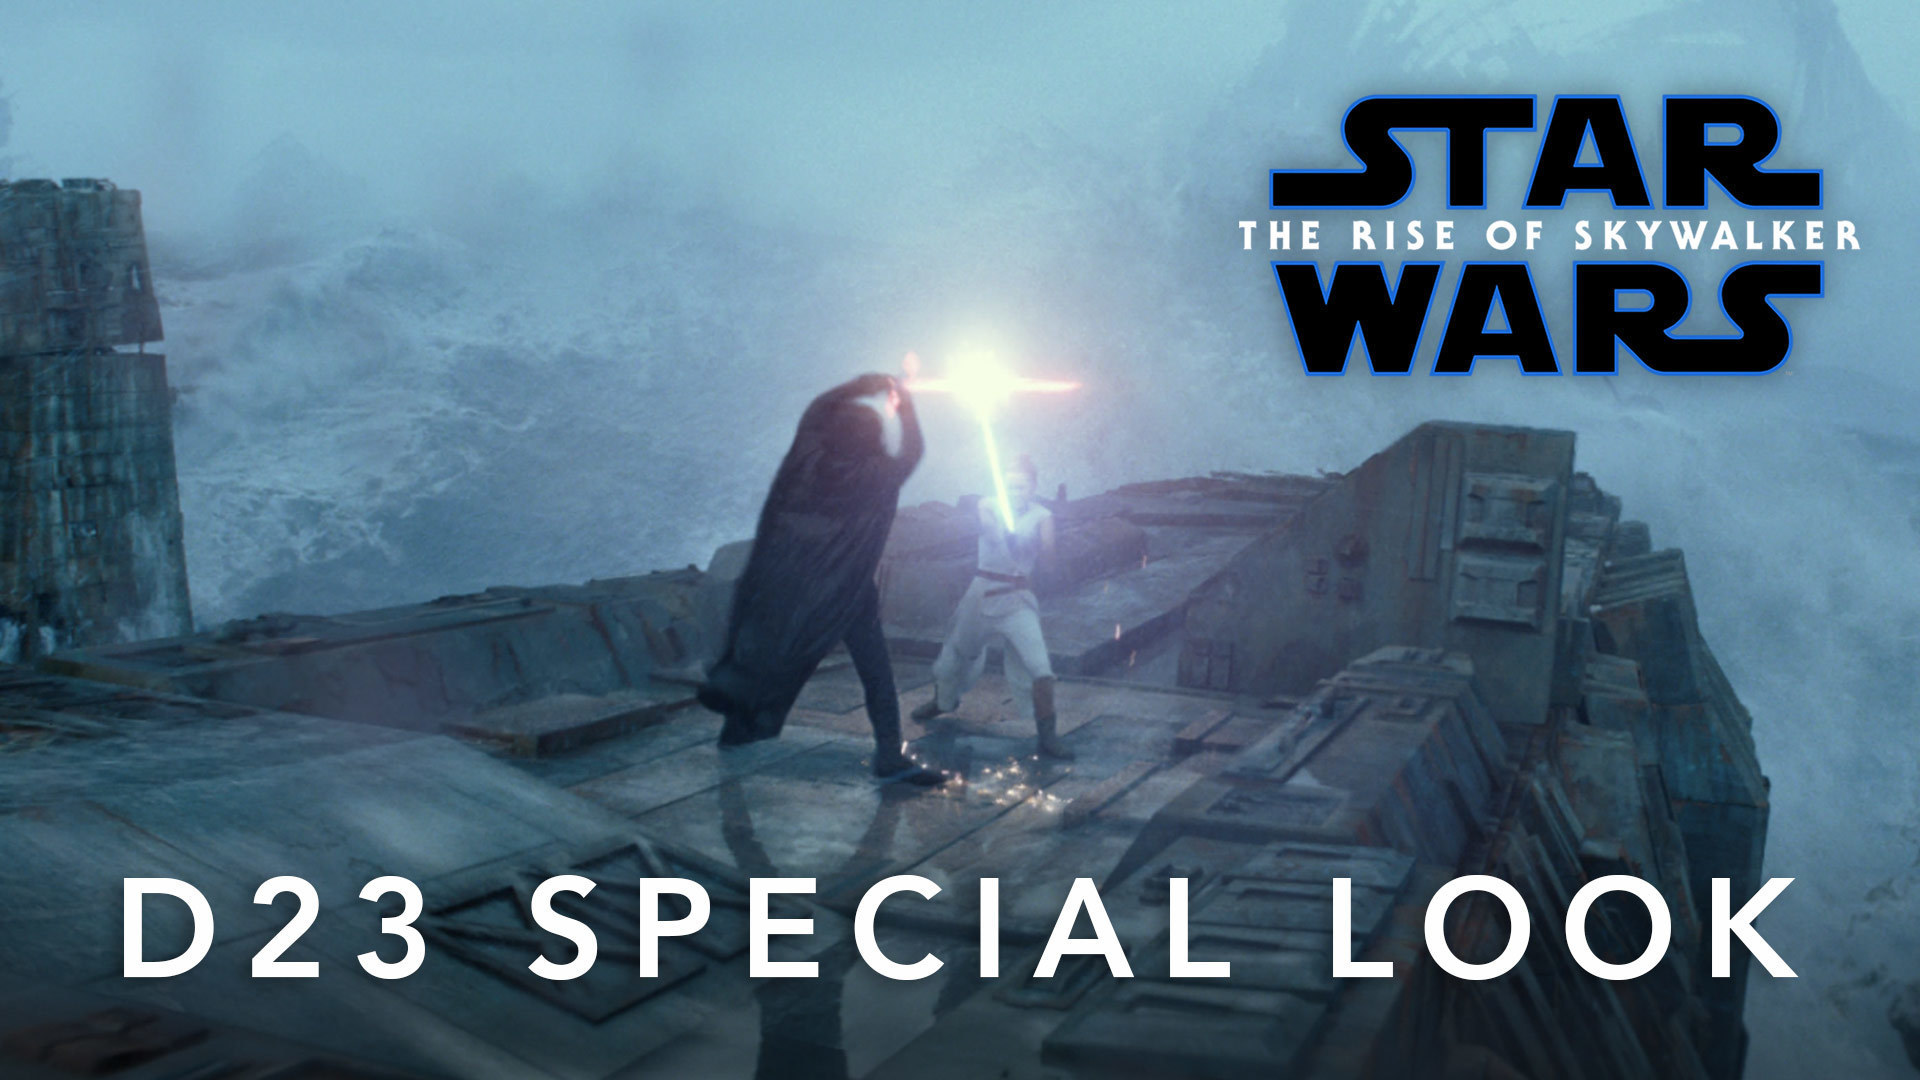 Star Wars: The Rise of Skywalker - D23 Special Look